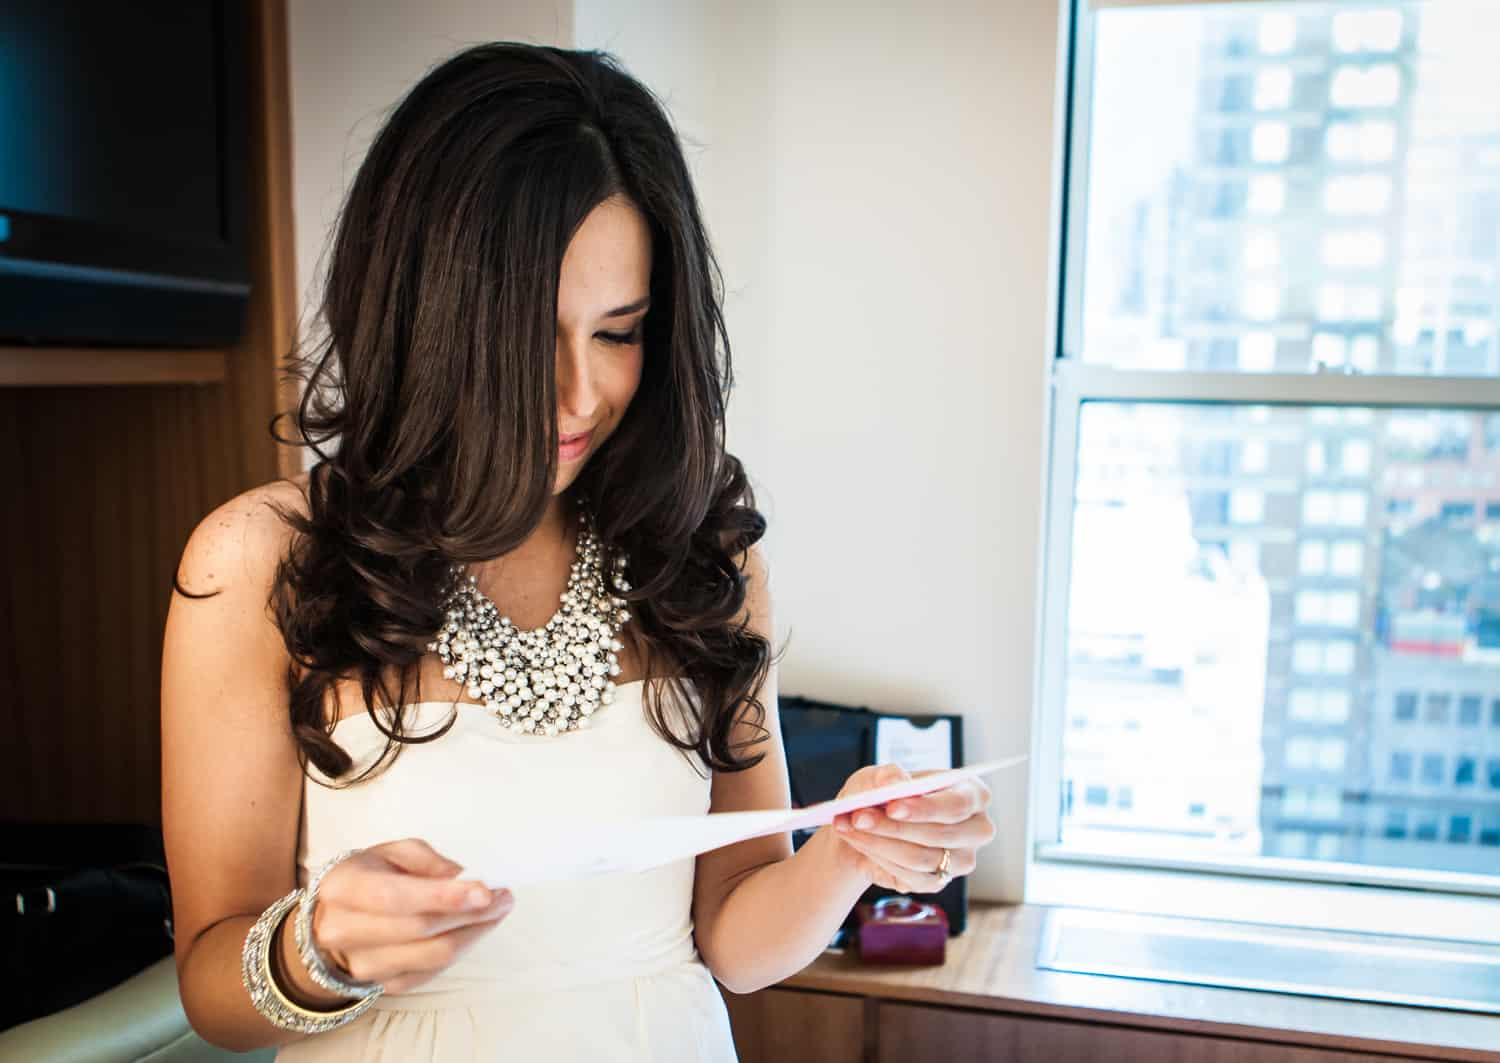 Bride reading letter from groom in hotel room